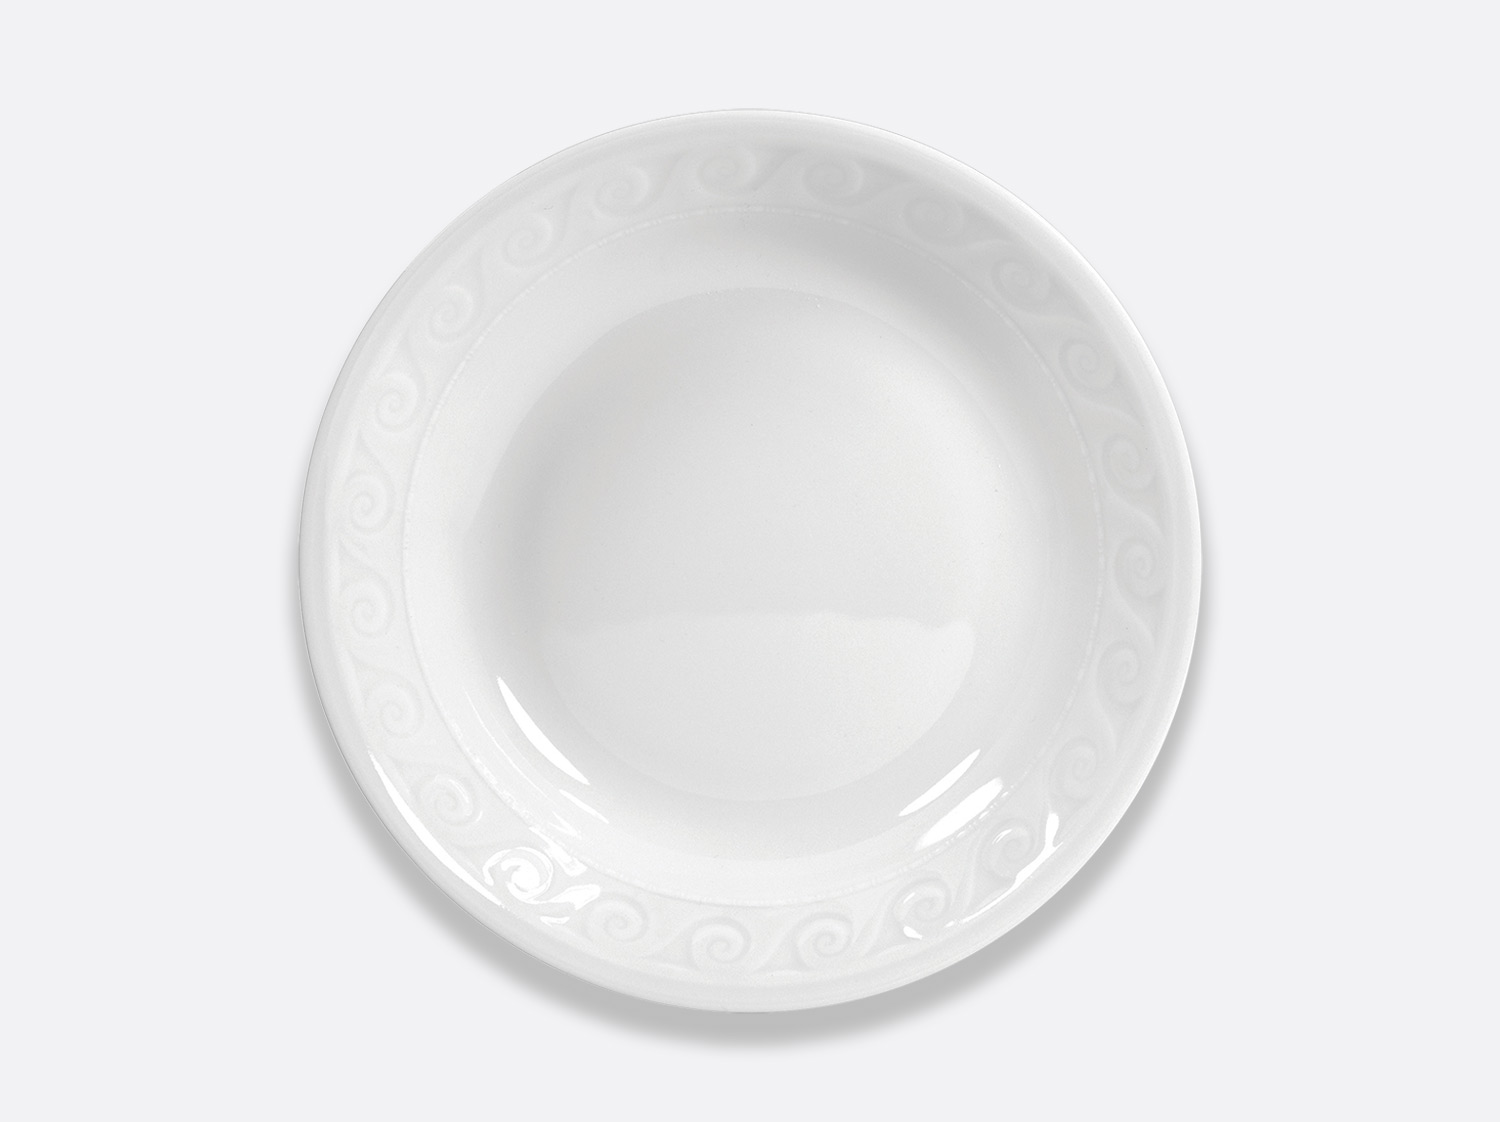 China Open vegetable bowl 80 cl of the collection Louvre | Bernardaud